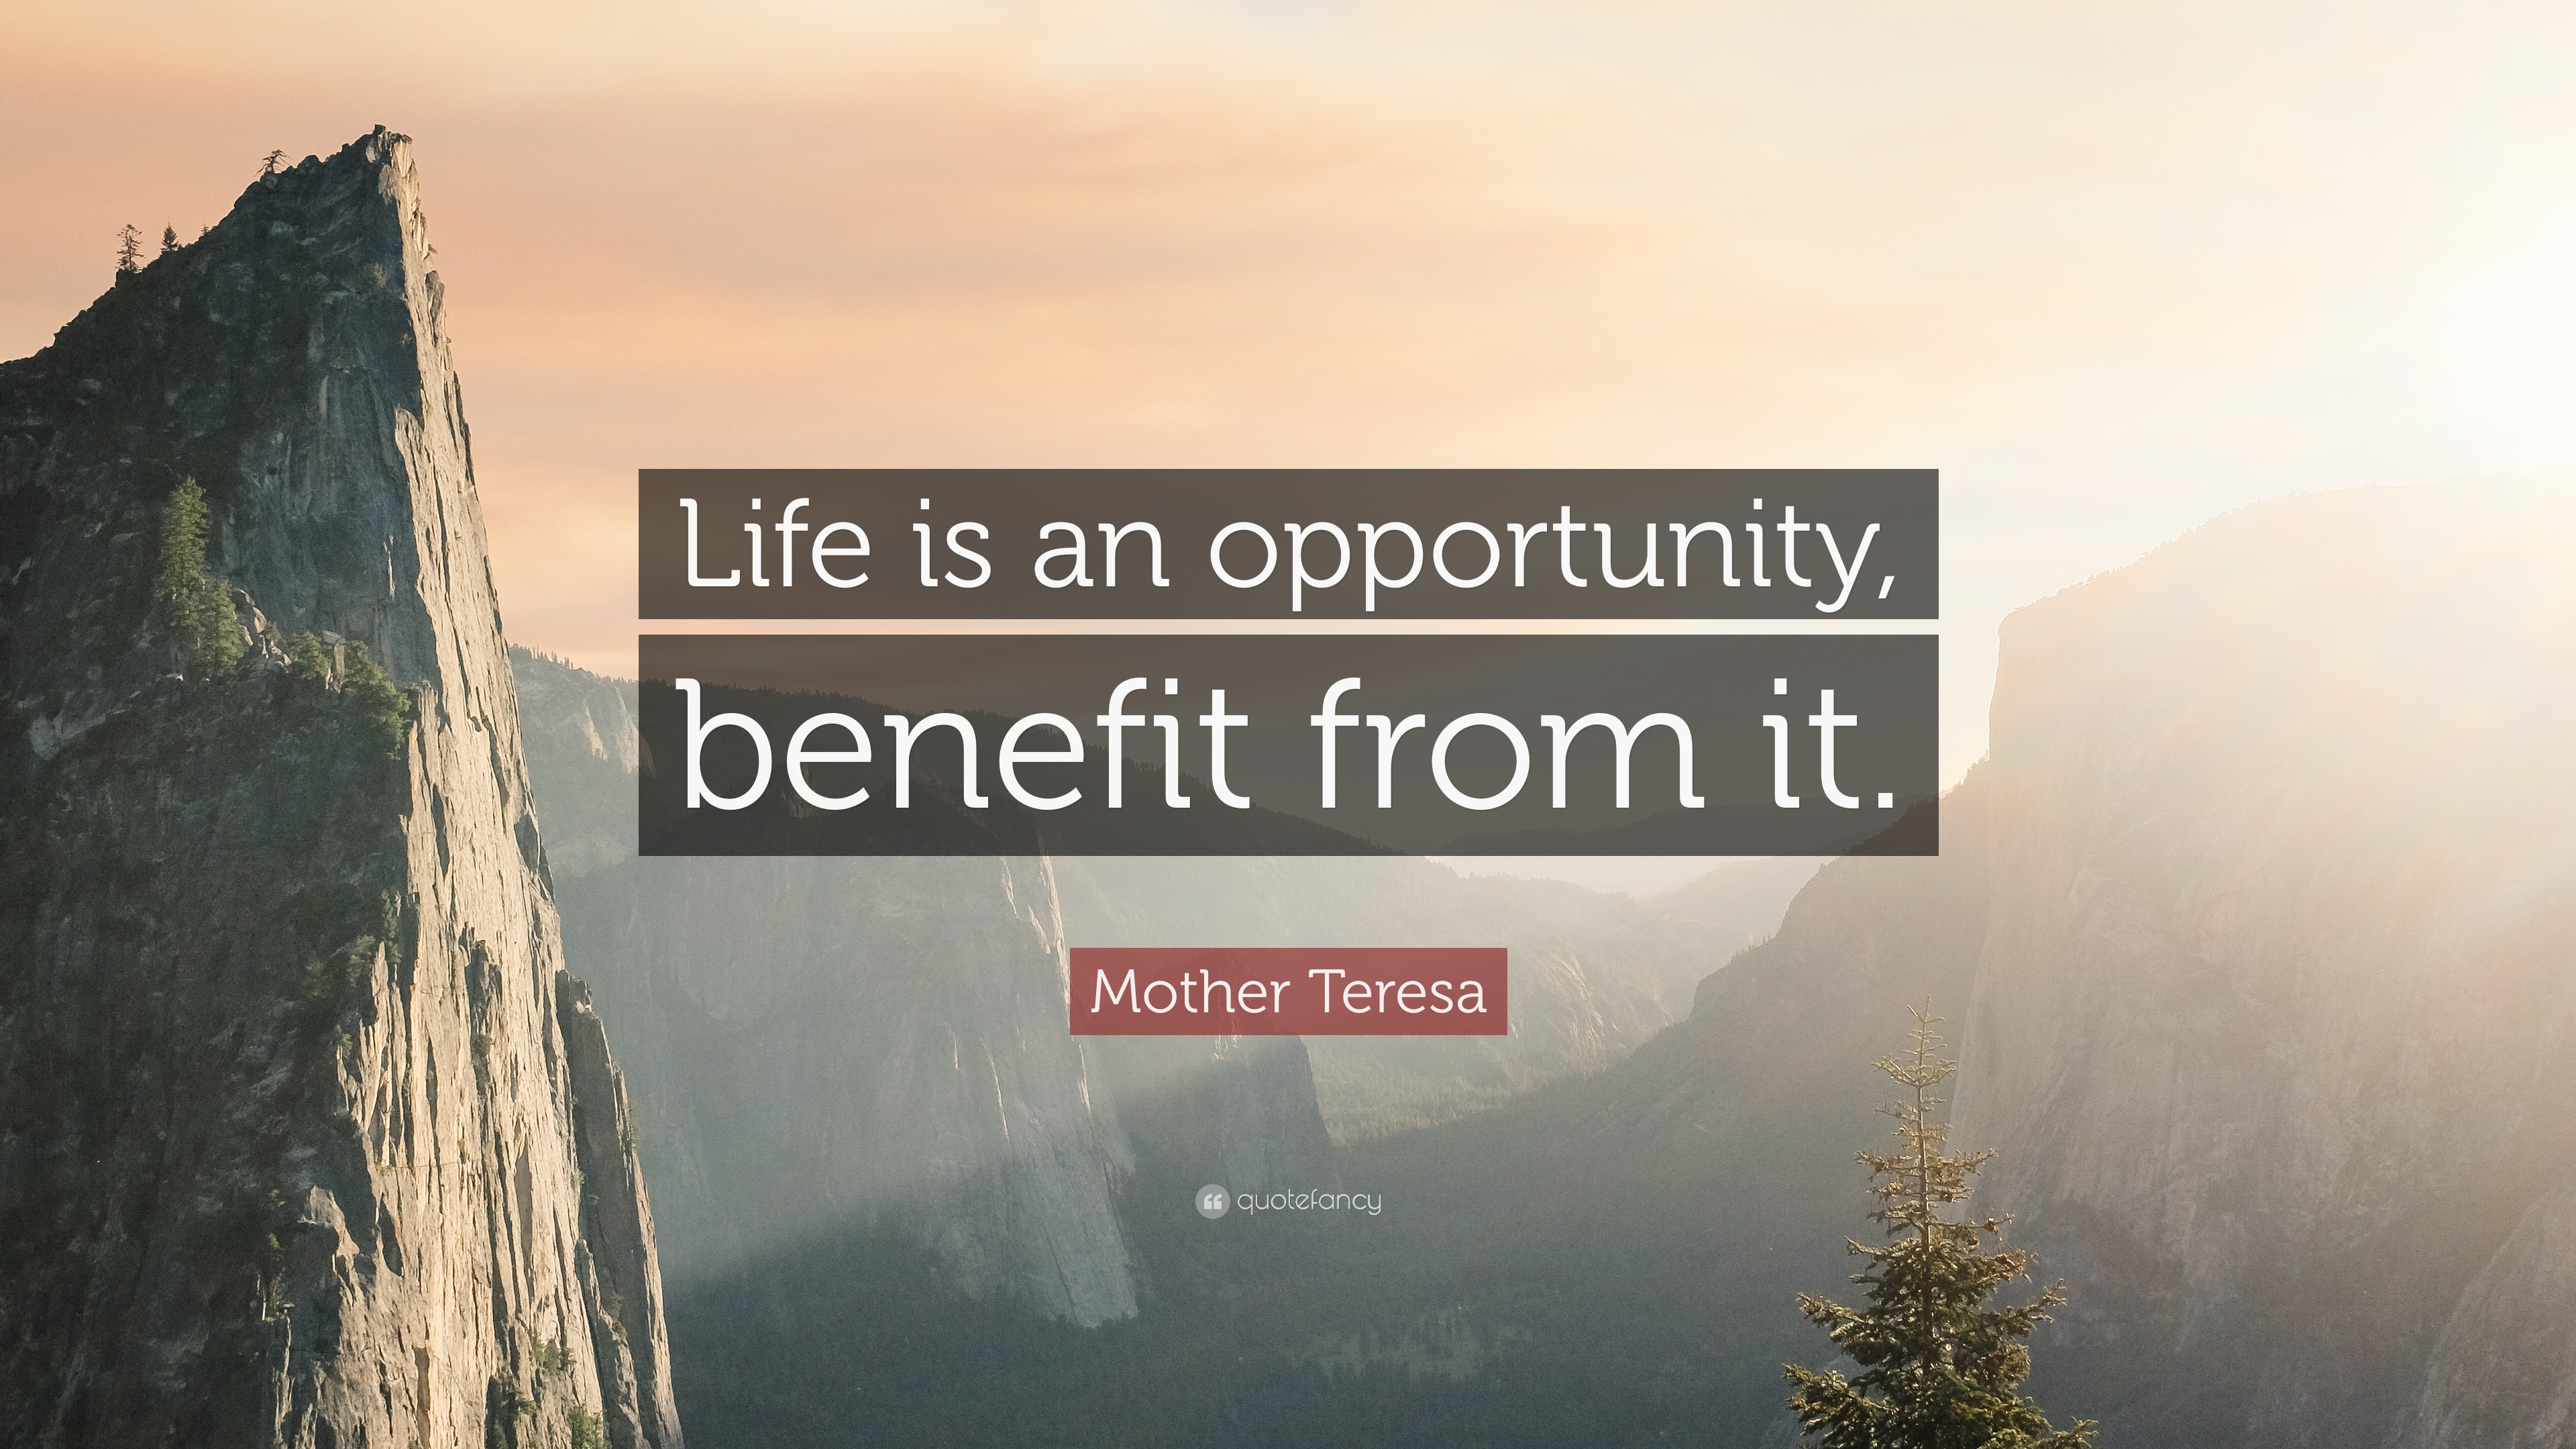 Mother Teresa Quote: U201cLife Is An Opportunity, Benefit From It.u201d